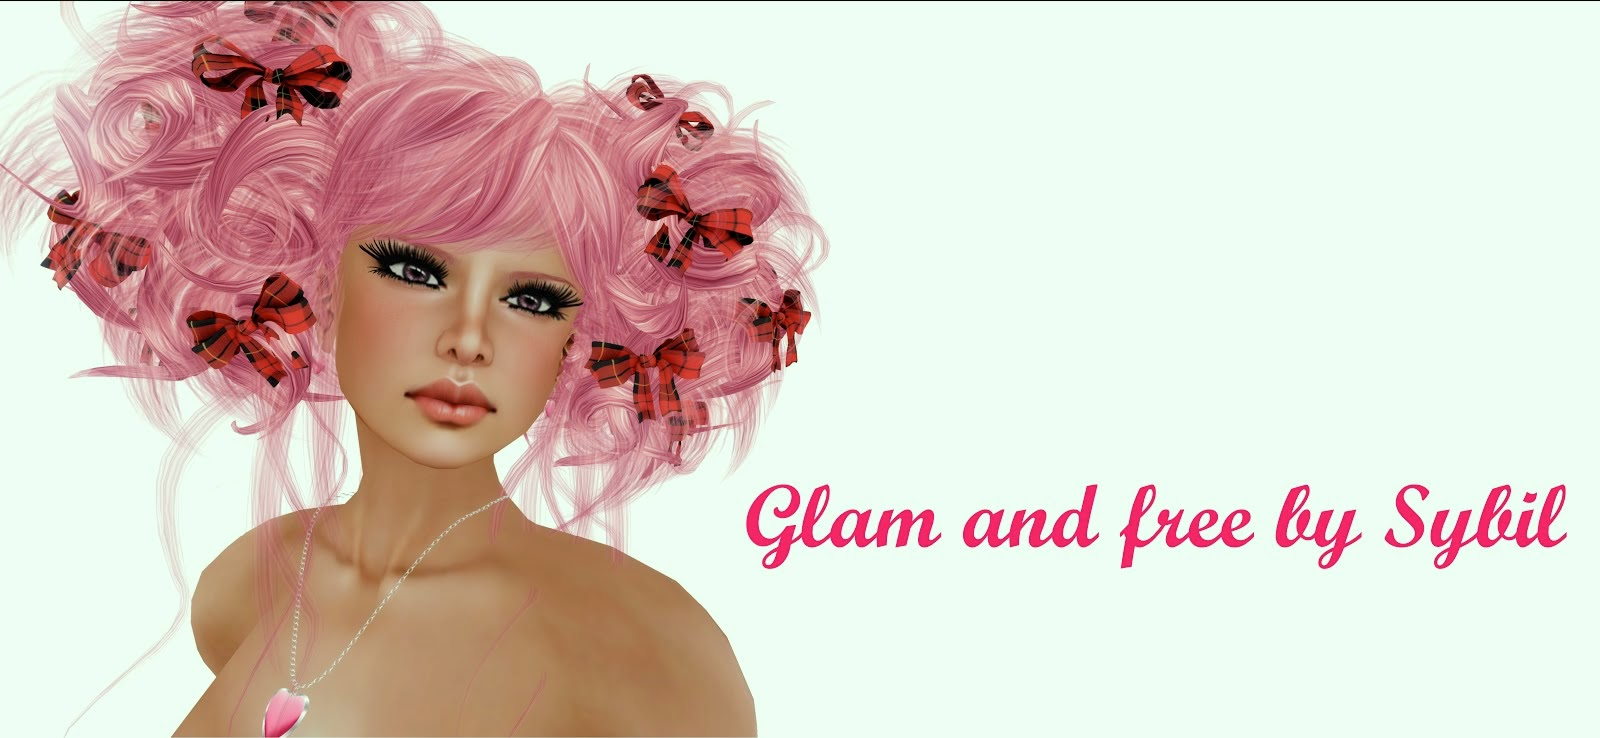 GLAM AND FREE by SYBIL